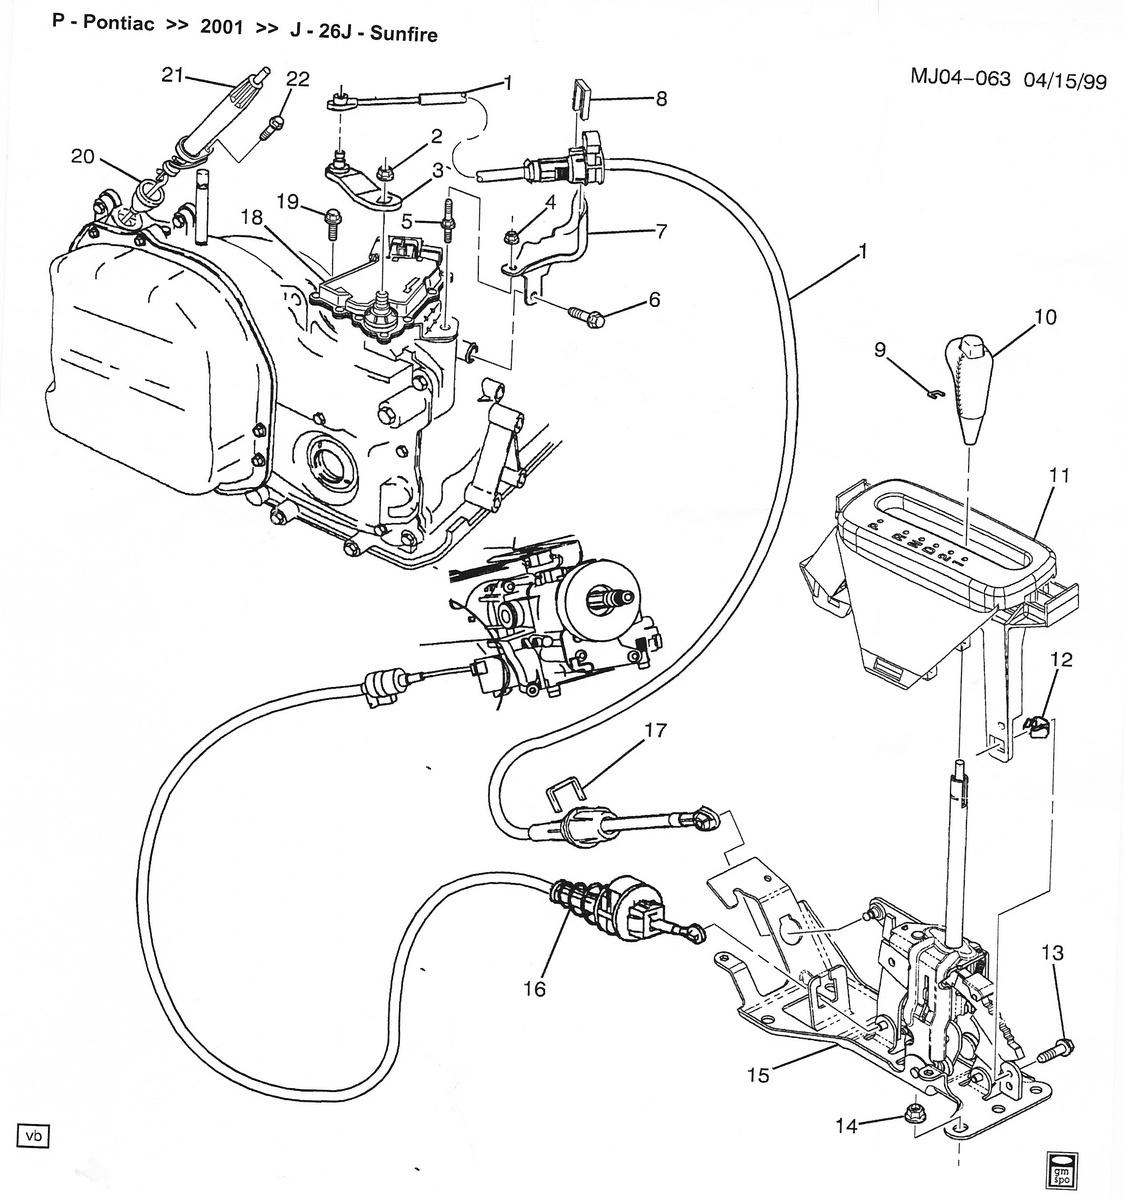 Page2 besides Willcox Corvette Wiring Diagram 1969 likewise Showassembly also Air Only Defrost Bottom Vents 67194 together with Discussion D608 ds527417. on chevy s10 vacuum hose diagram